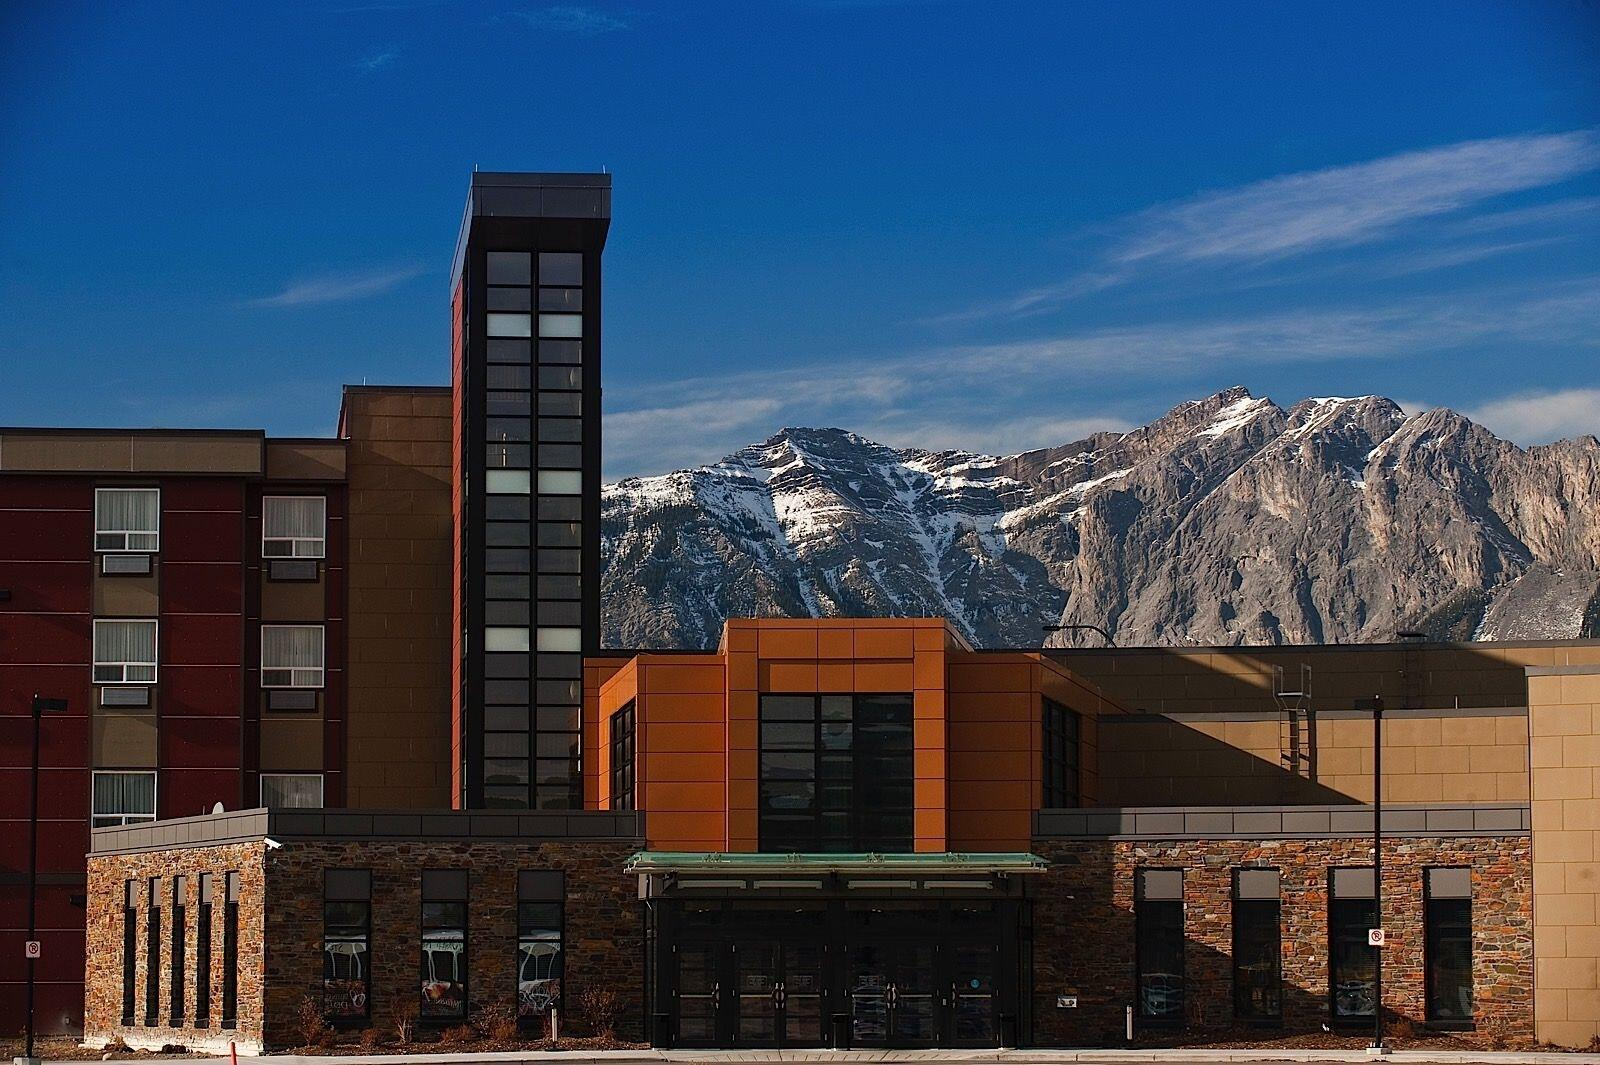 Hotel exterior with mountains in background